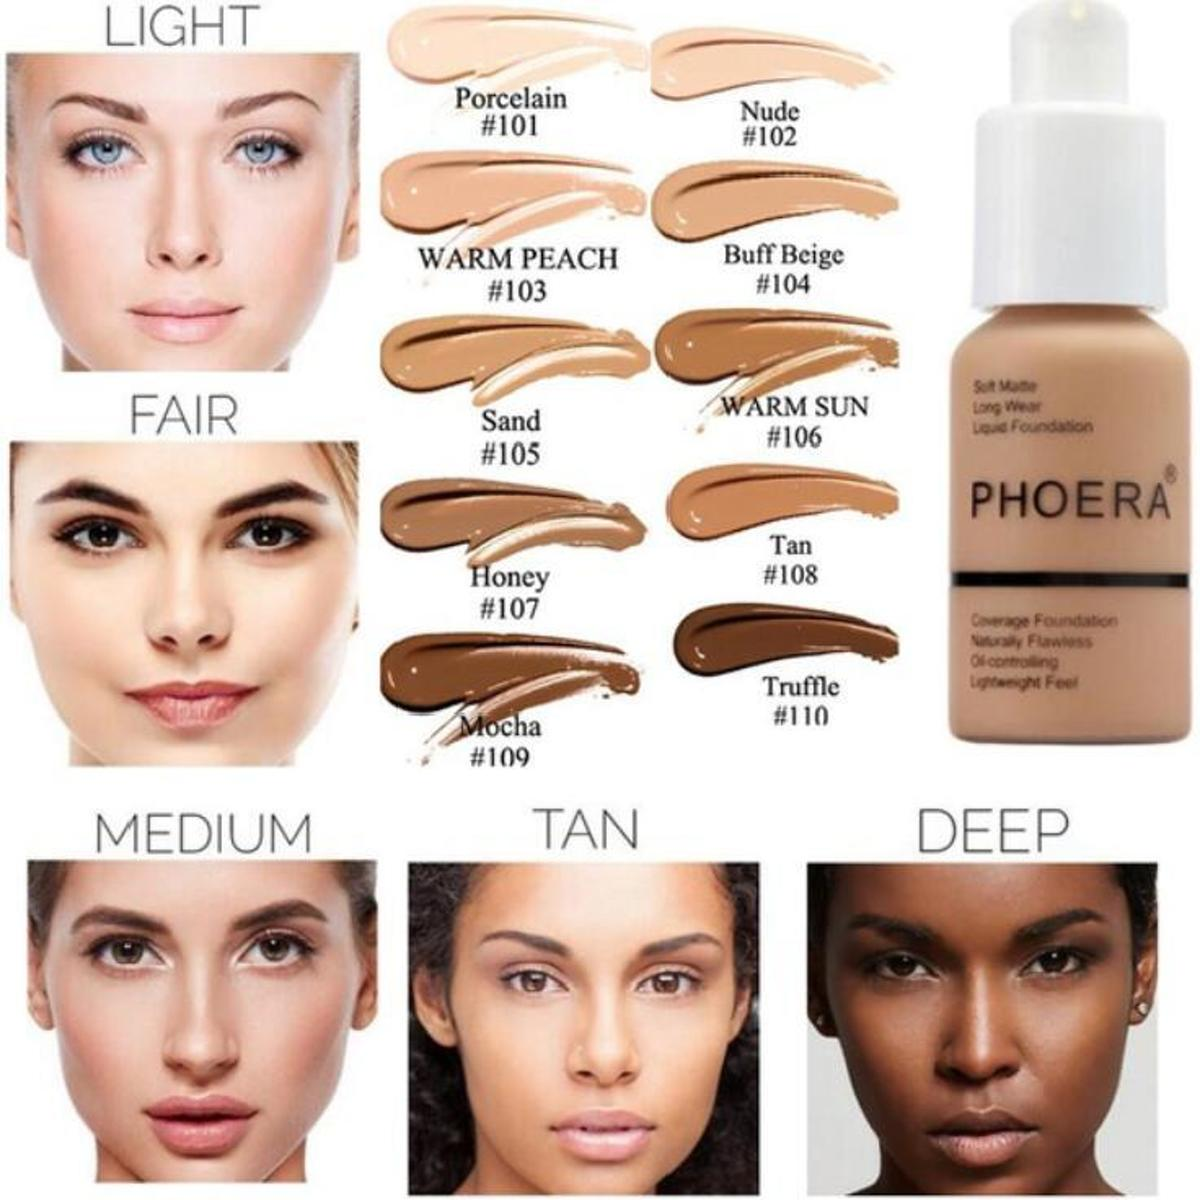 103 warm peach - PHOERA FOUNDATION™ - Soft Matte Full Coverage Liquid Foundation